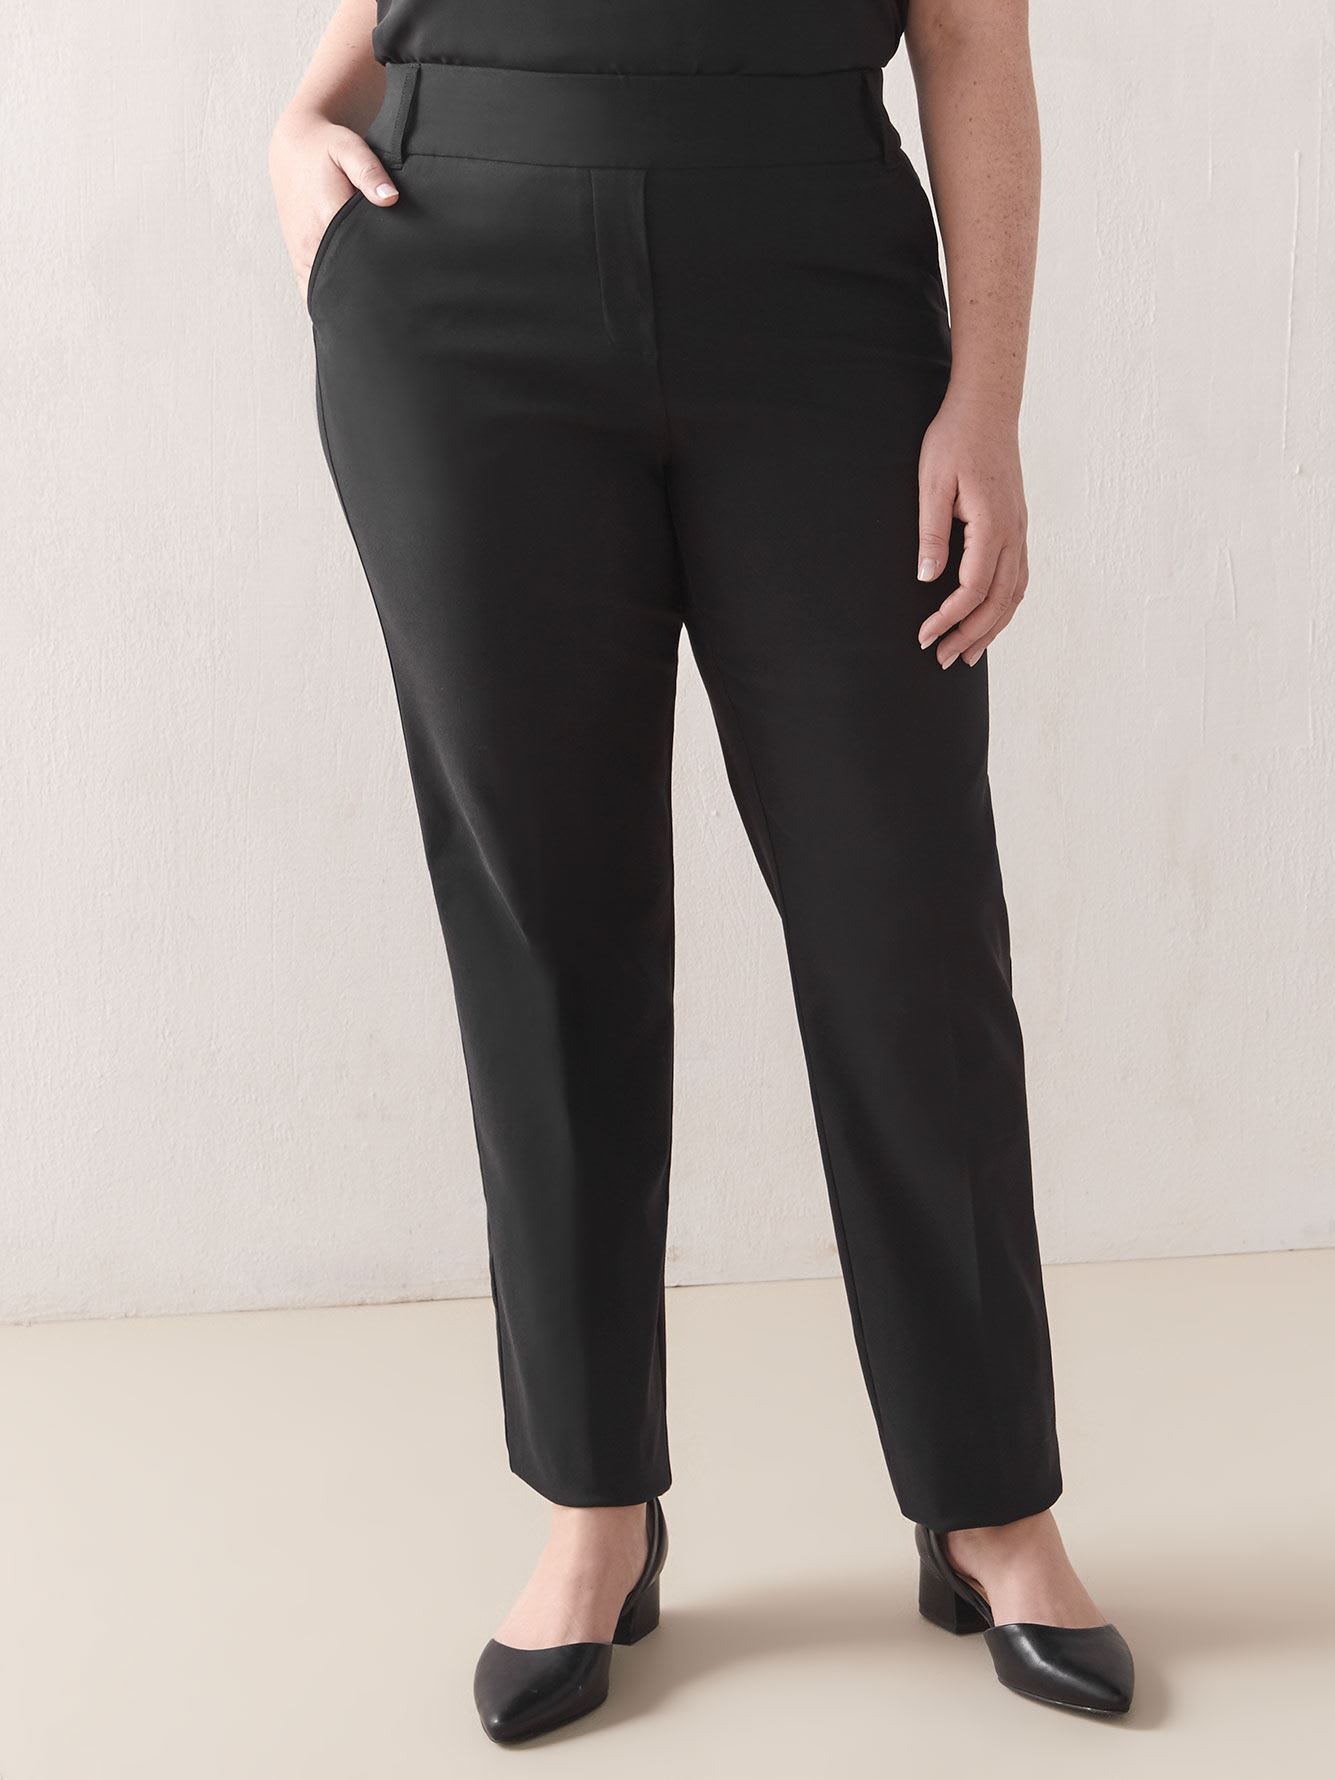 Tall, Black Straight-Leg Pant - In Every Story